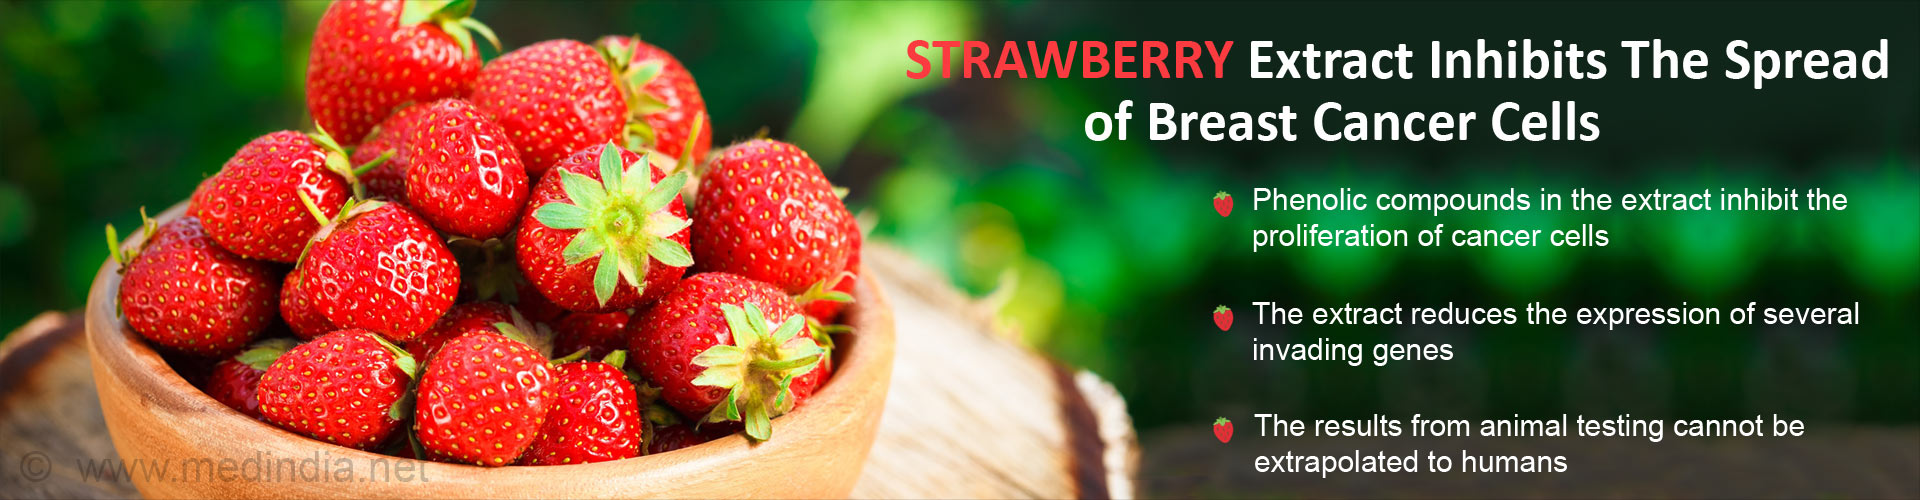 Strawberry extract inhibits the spread of breast cancer cells - Phenolic compunds in the extract inhibit the proliferation of cancer cells - The extract reduces the expression of several invading genes - The results from animals testing cannot be extrapolated to humans